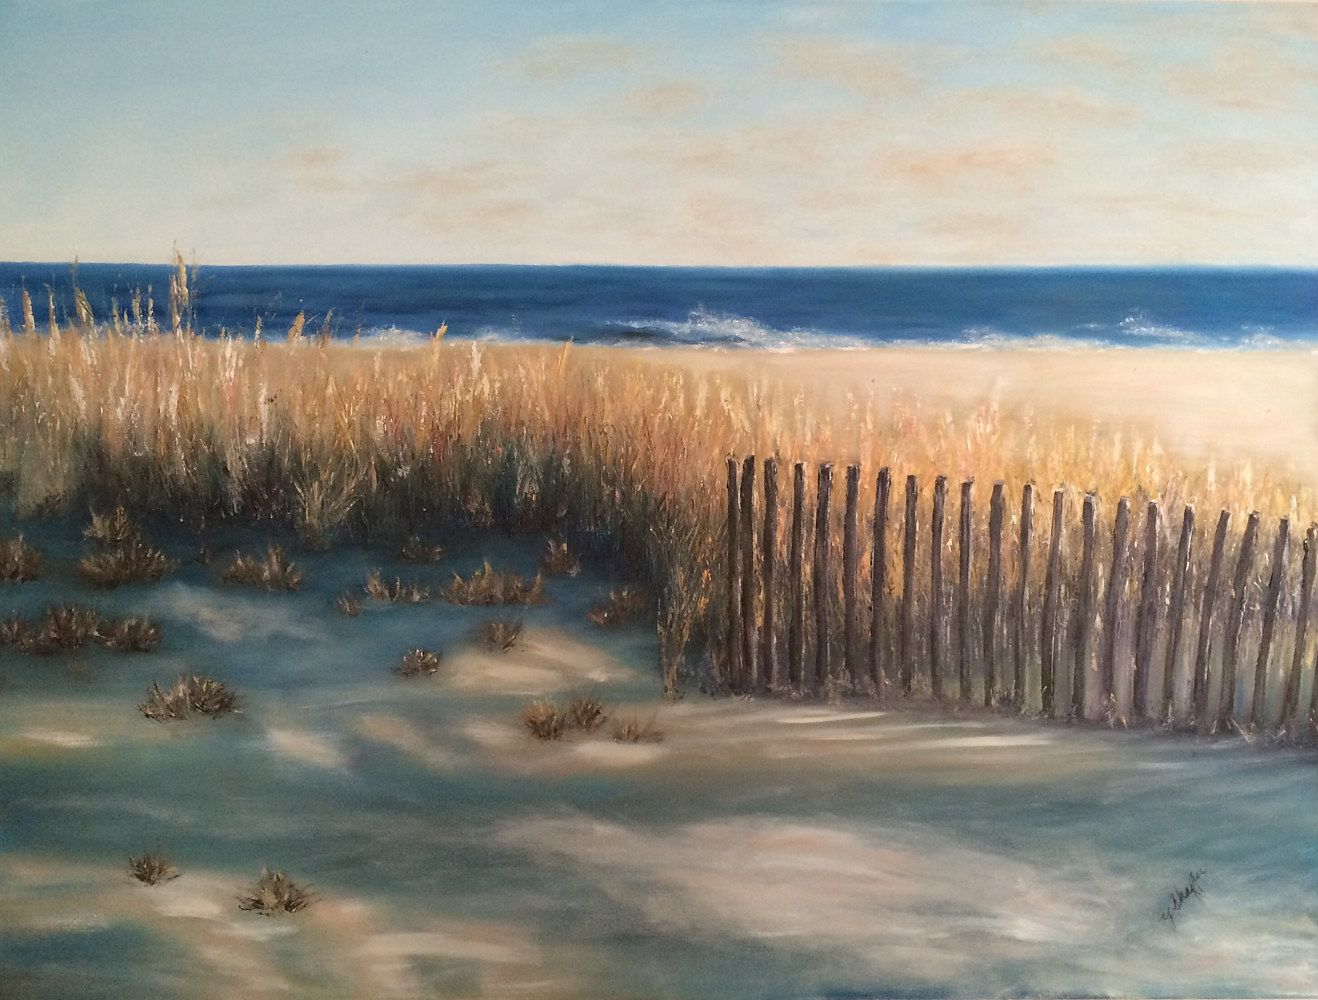 Oil painting Shadows in the Sand by Yvonne Shaffer